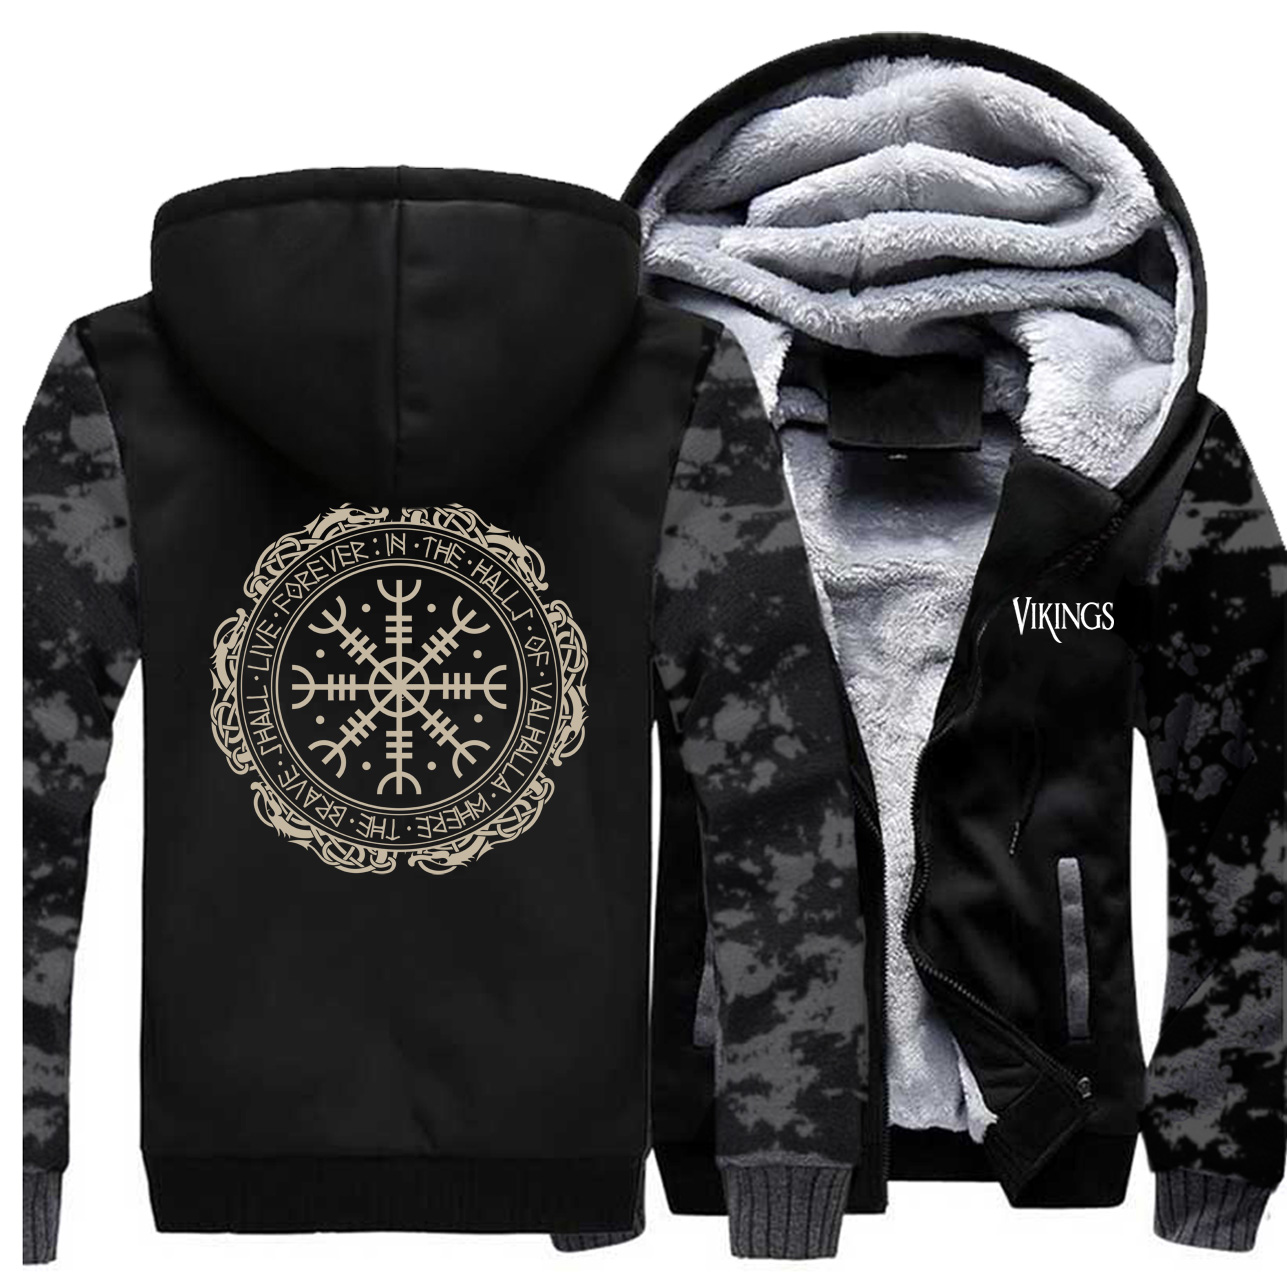 2019 Winter Thick Mens Hoodies Viking Printing Male Jacket Hip Hop Brand Outwear Hot Sale Camouflage Sleeve Men's Jacket Casual 4